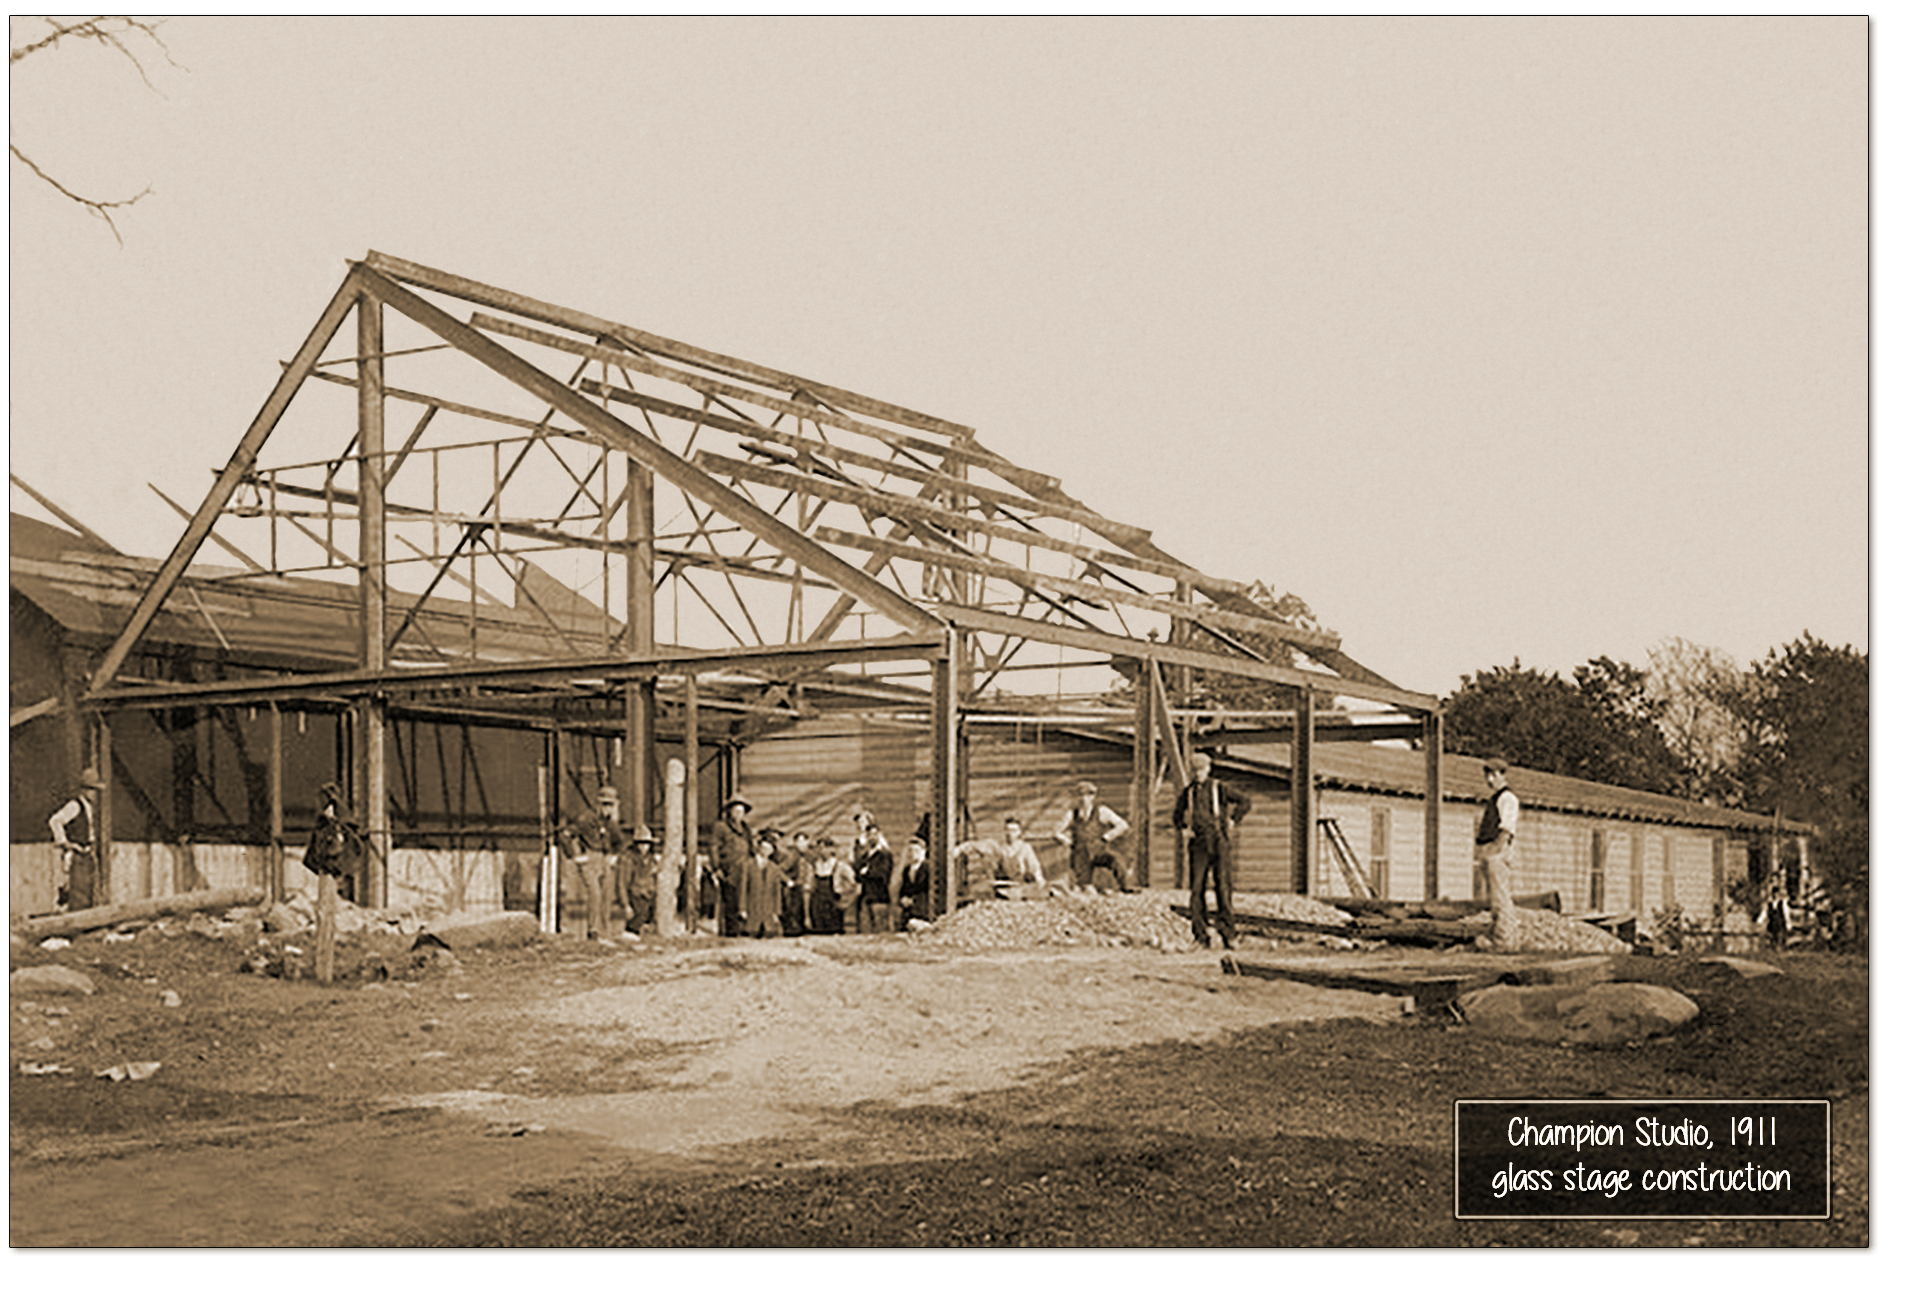 Champion glass stage construction 1911